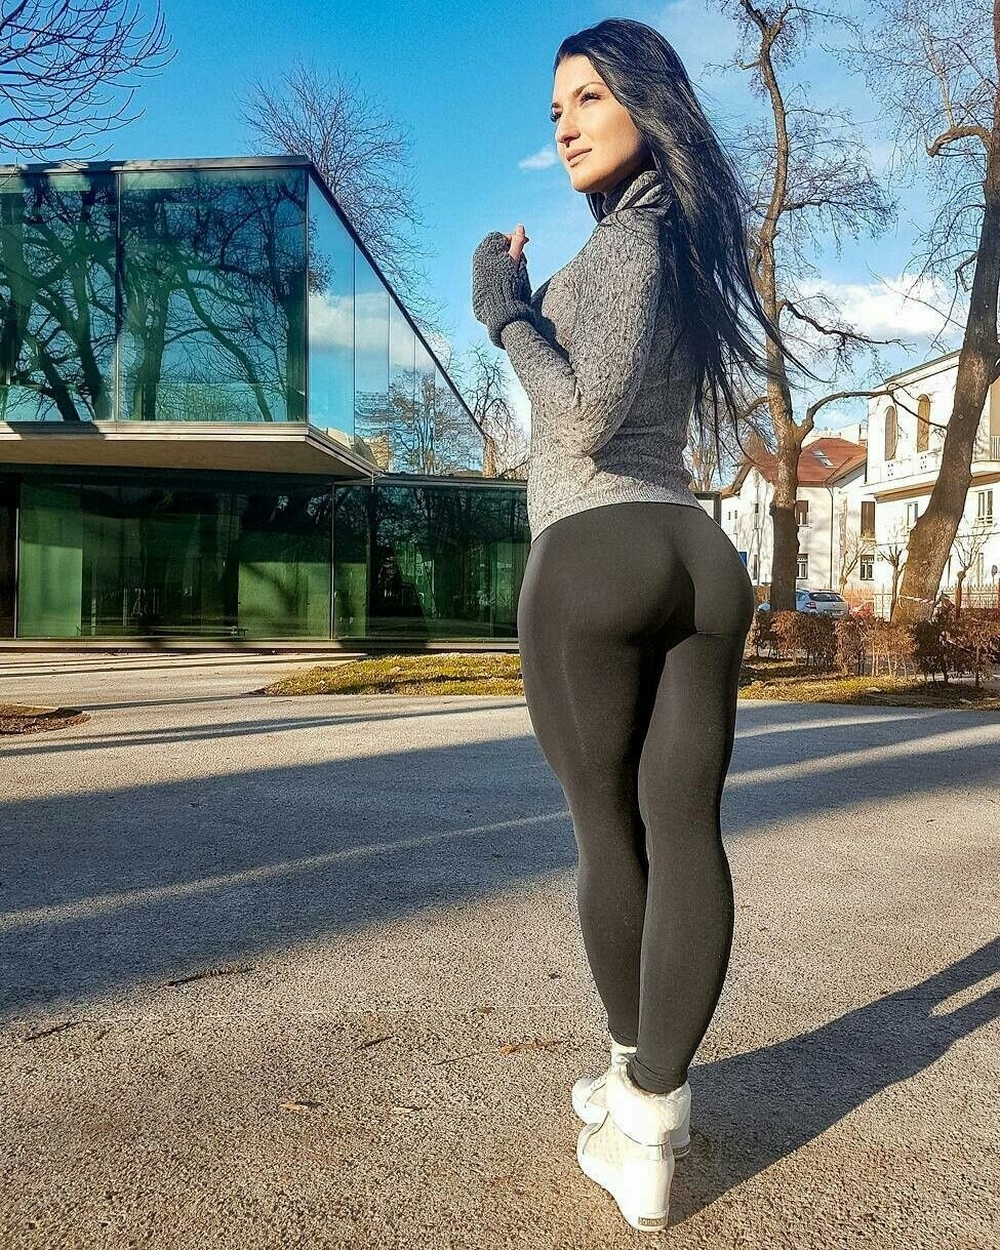 Girls in sexy tights